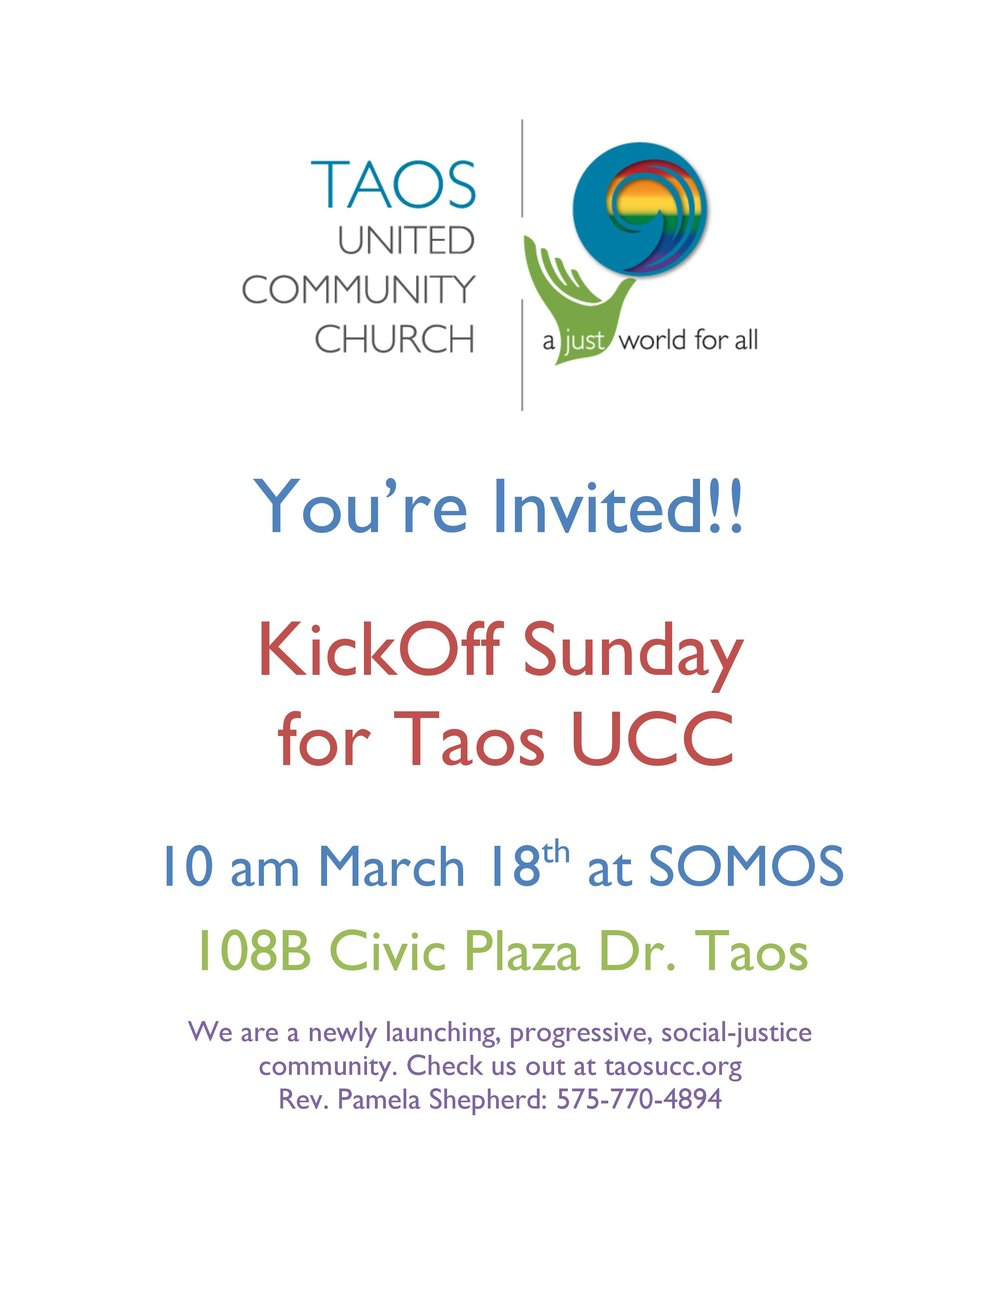 taos kick off sunday.jpg